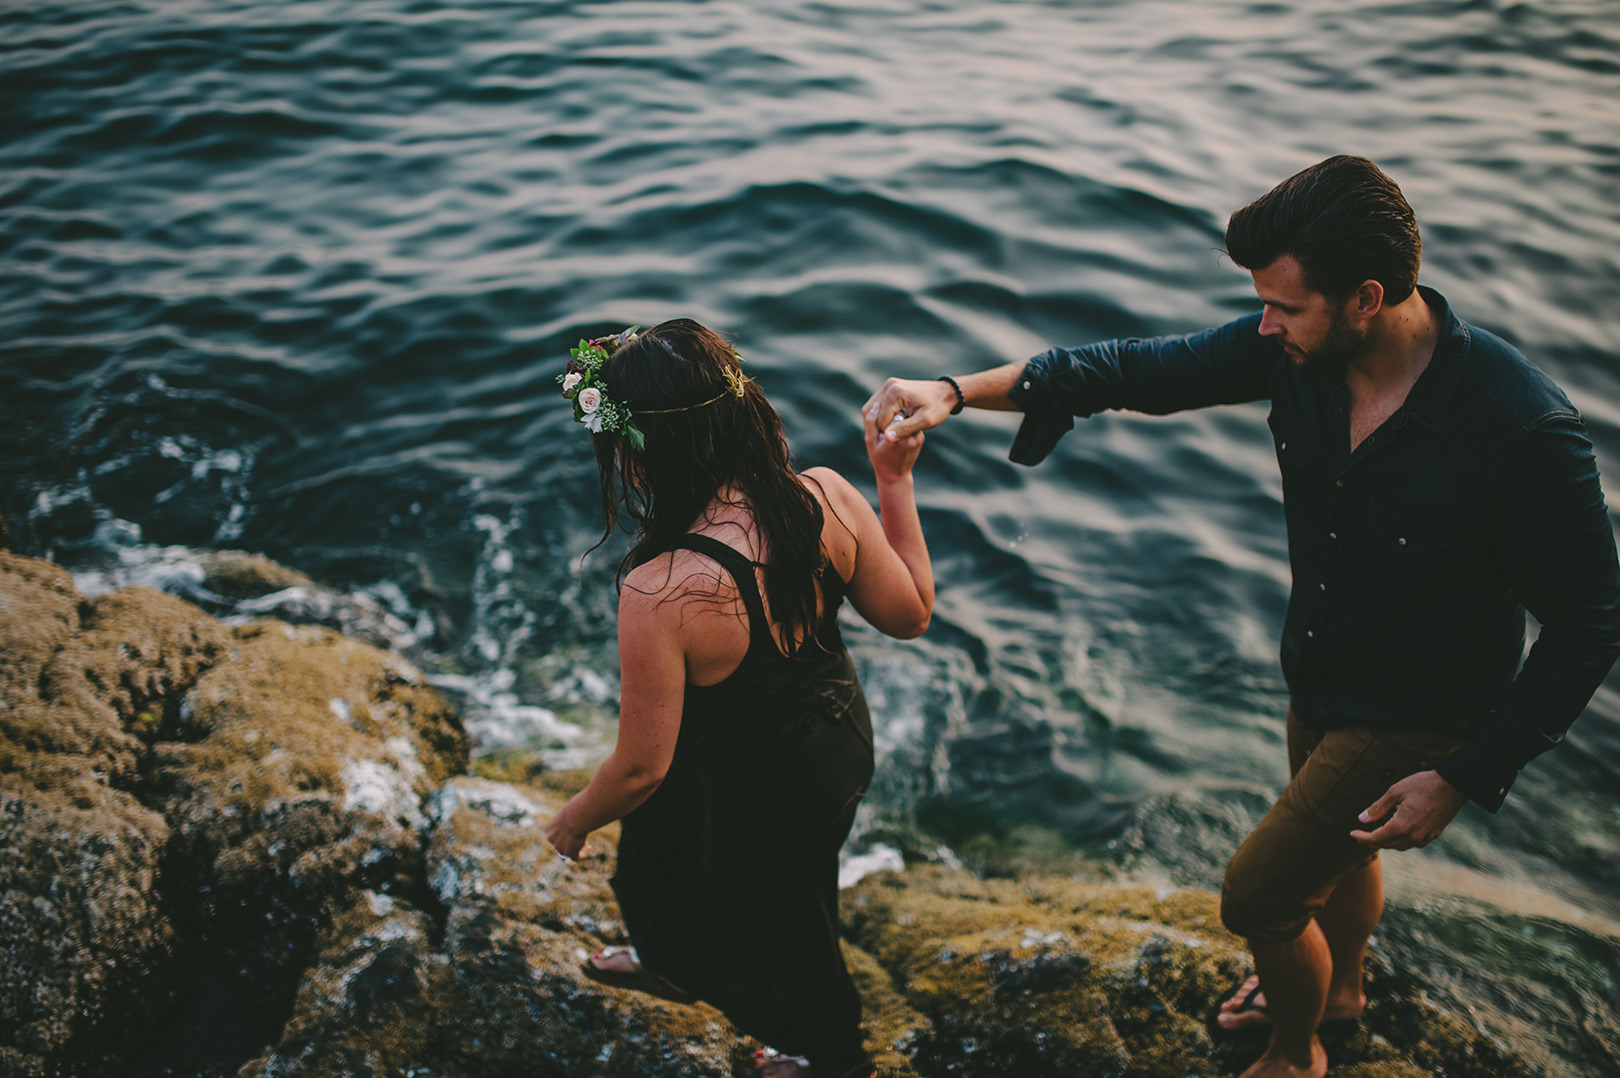 Whytecliff beach engagement session